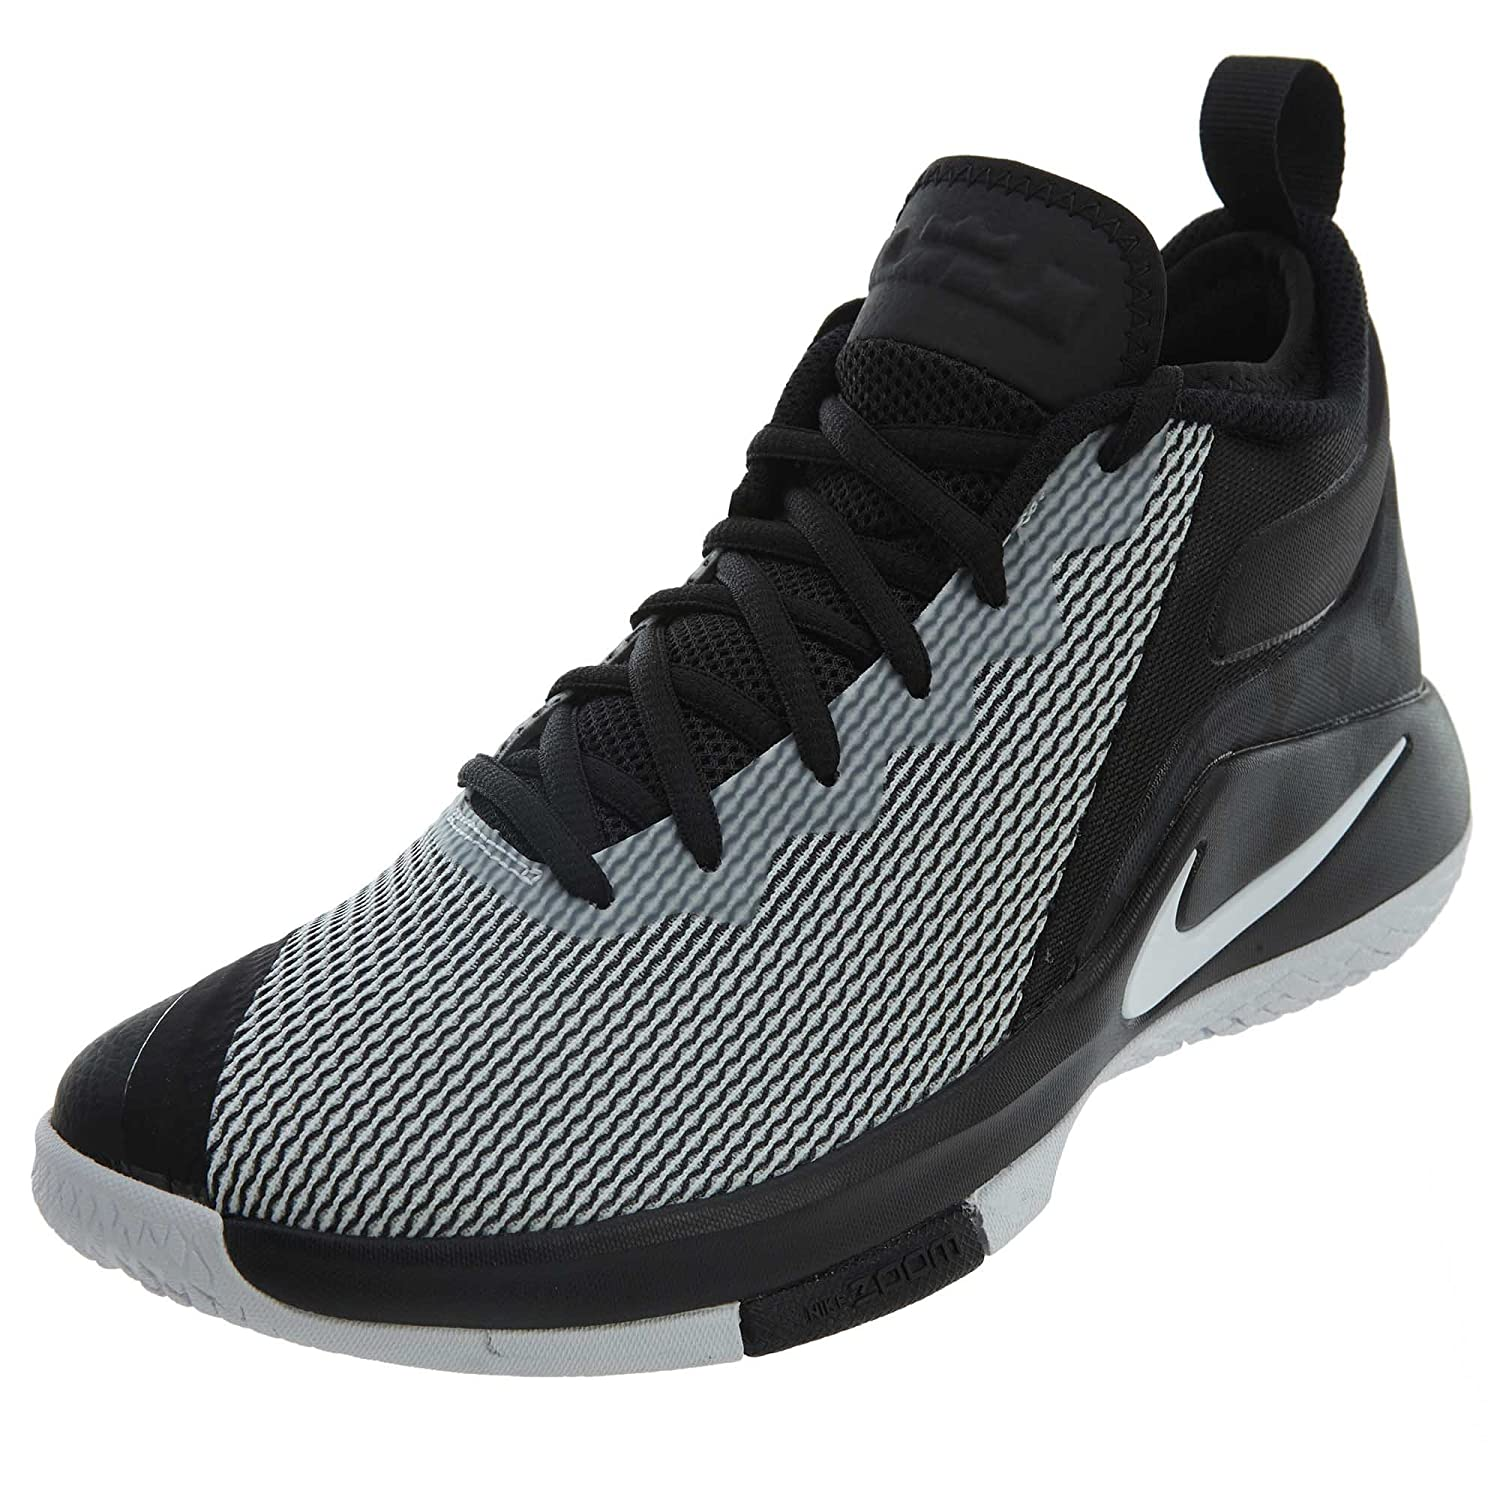 best authentic f7fbc d714f Nike Mens Lebron Witness II Basketball Shoe Black White 9.5  Buy Online at  Low Prices in India - Amazon.in